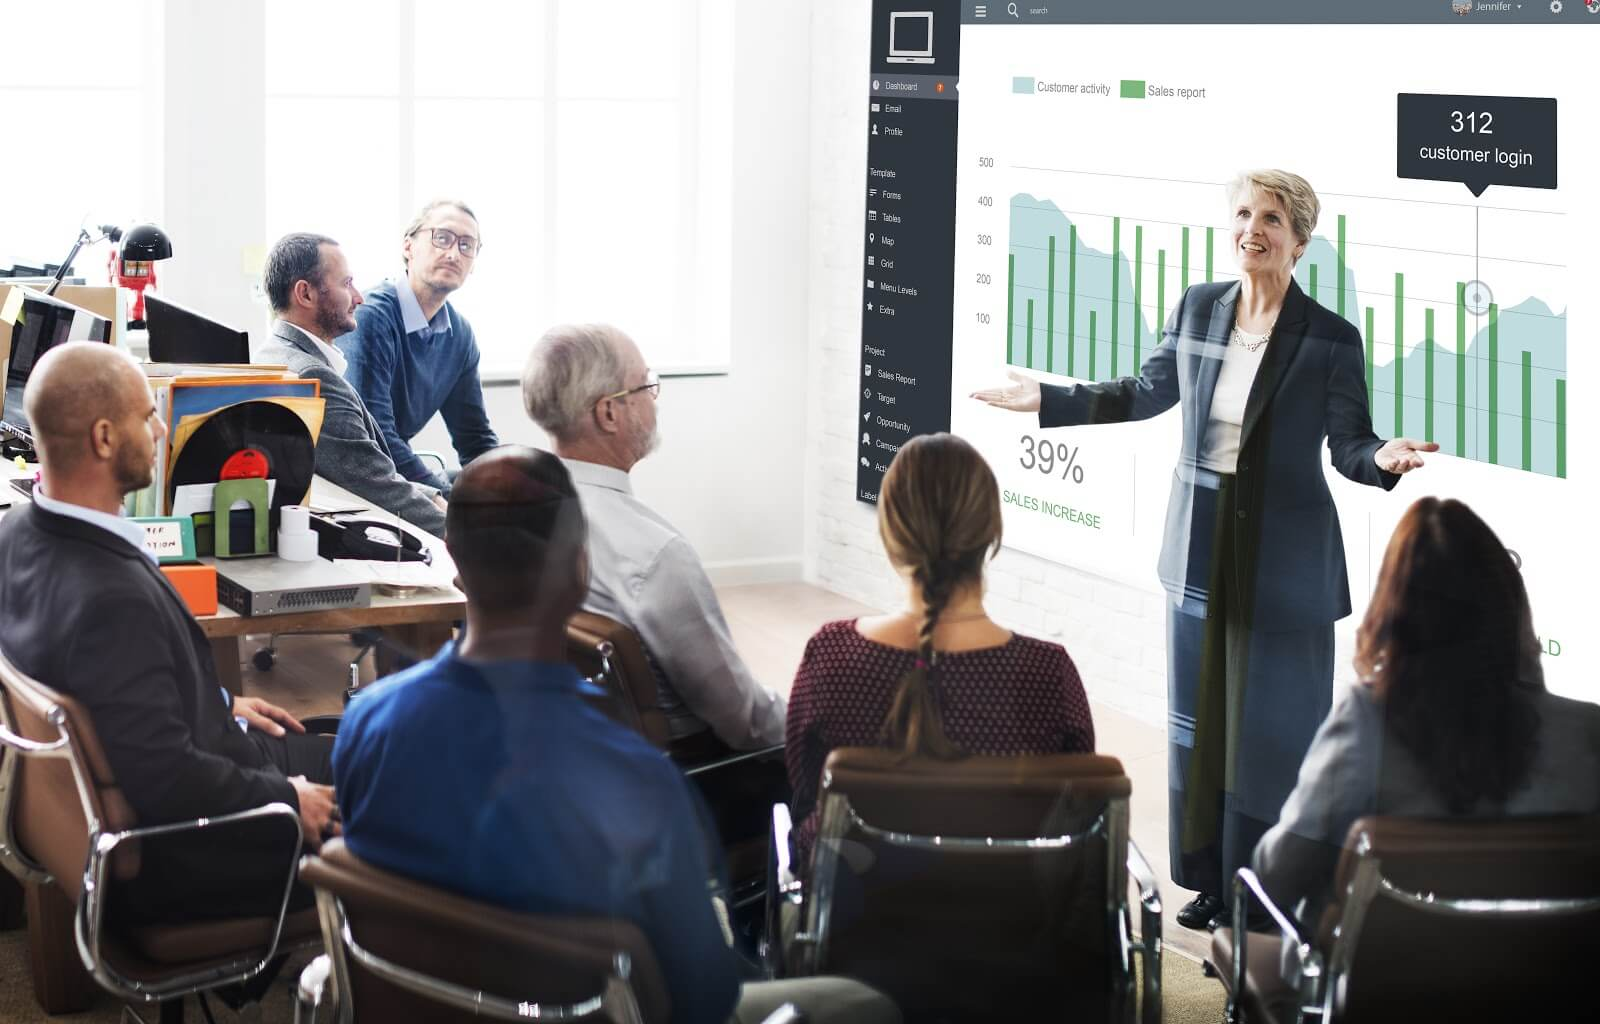 Older professional woman presenting data to room of colleagues